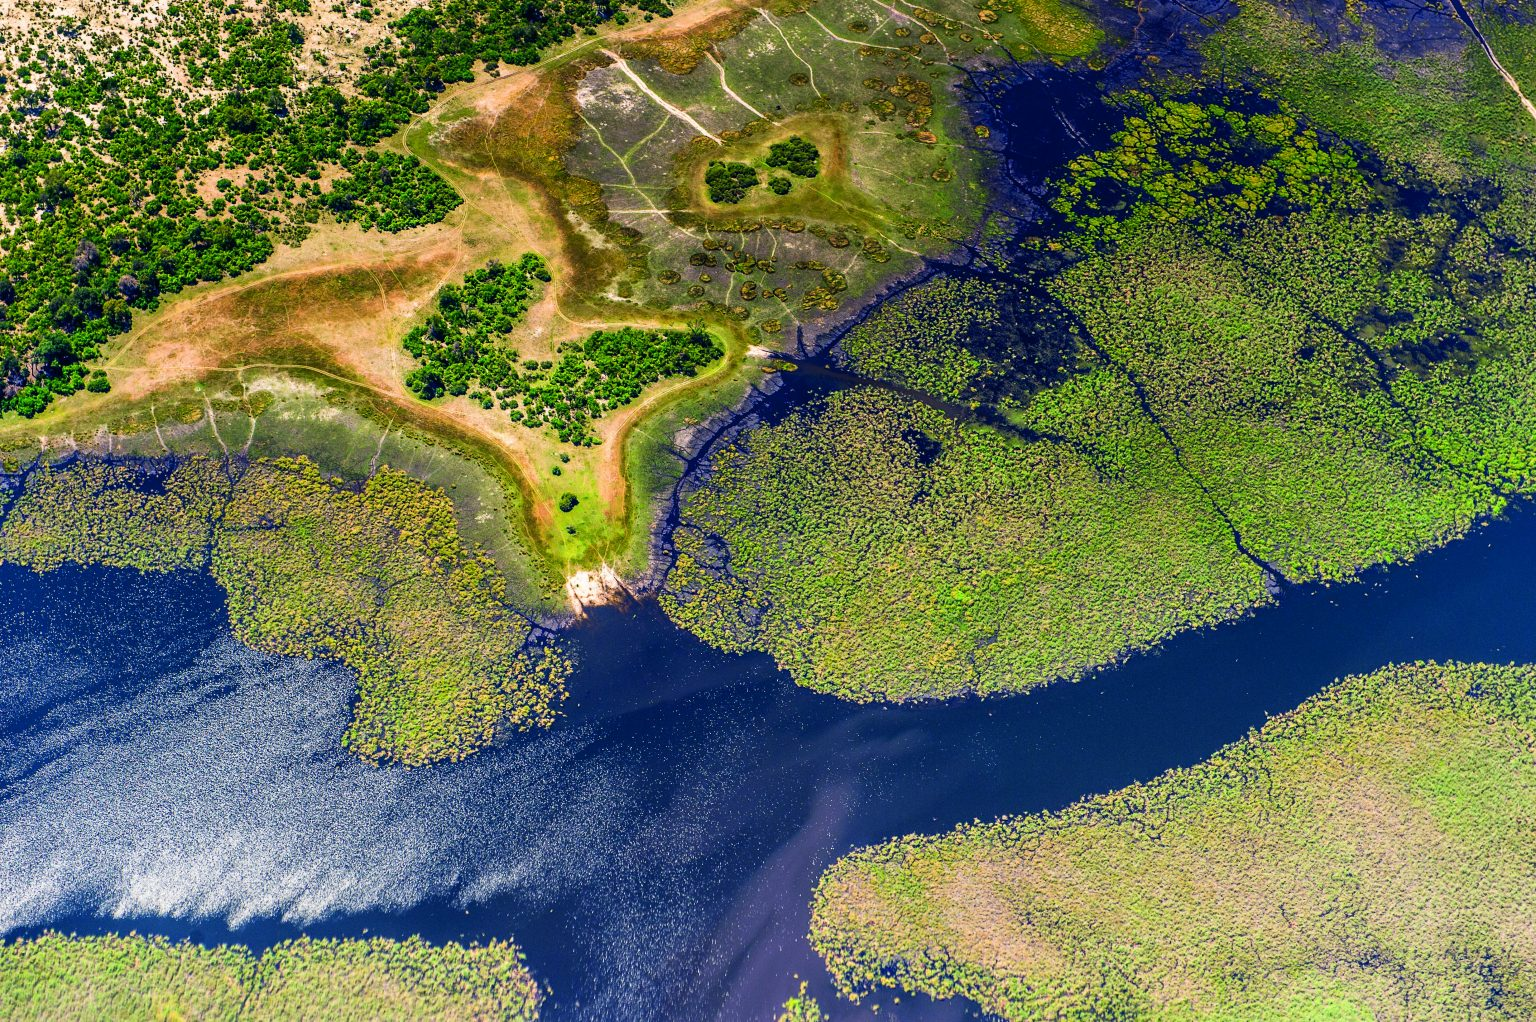 New fund targets long-term protection of the Cubango-Okavango River Basin